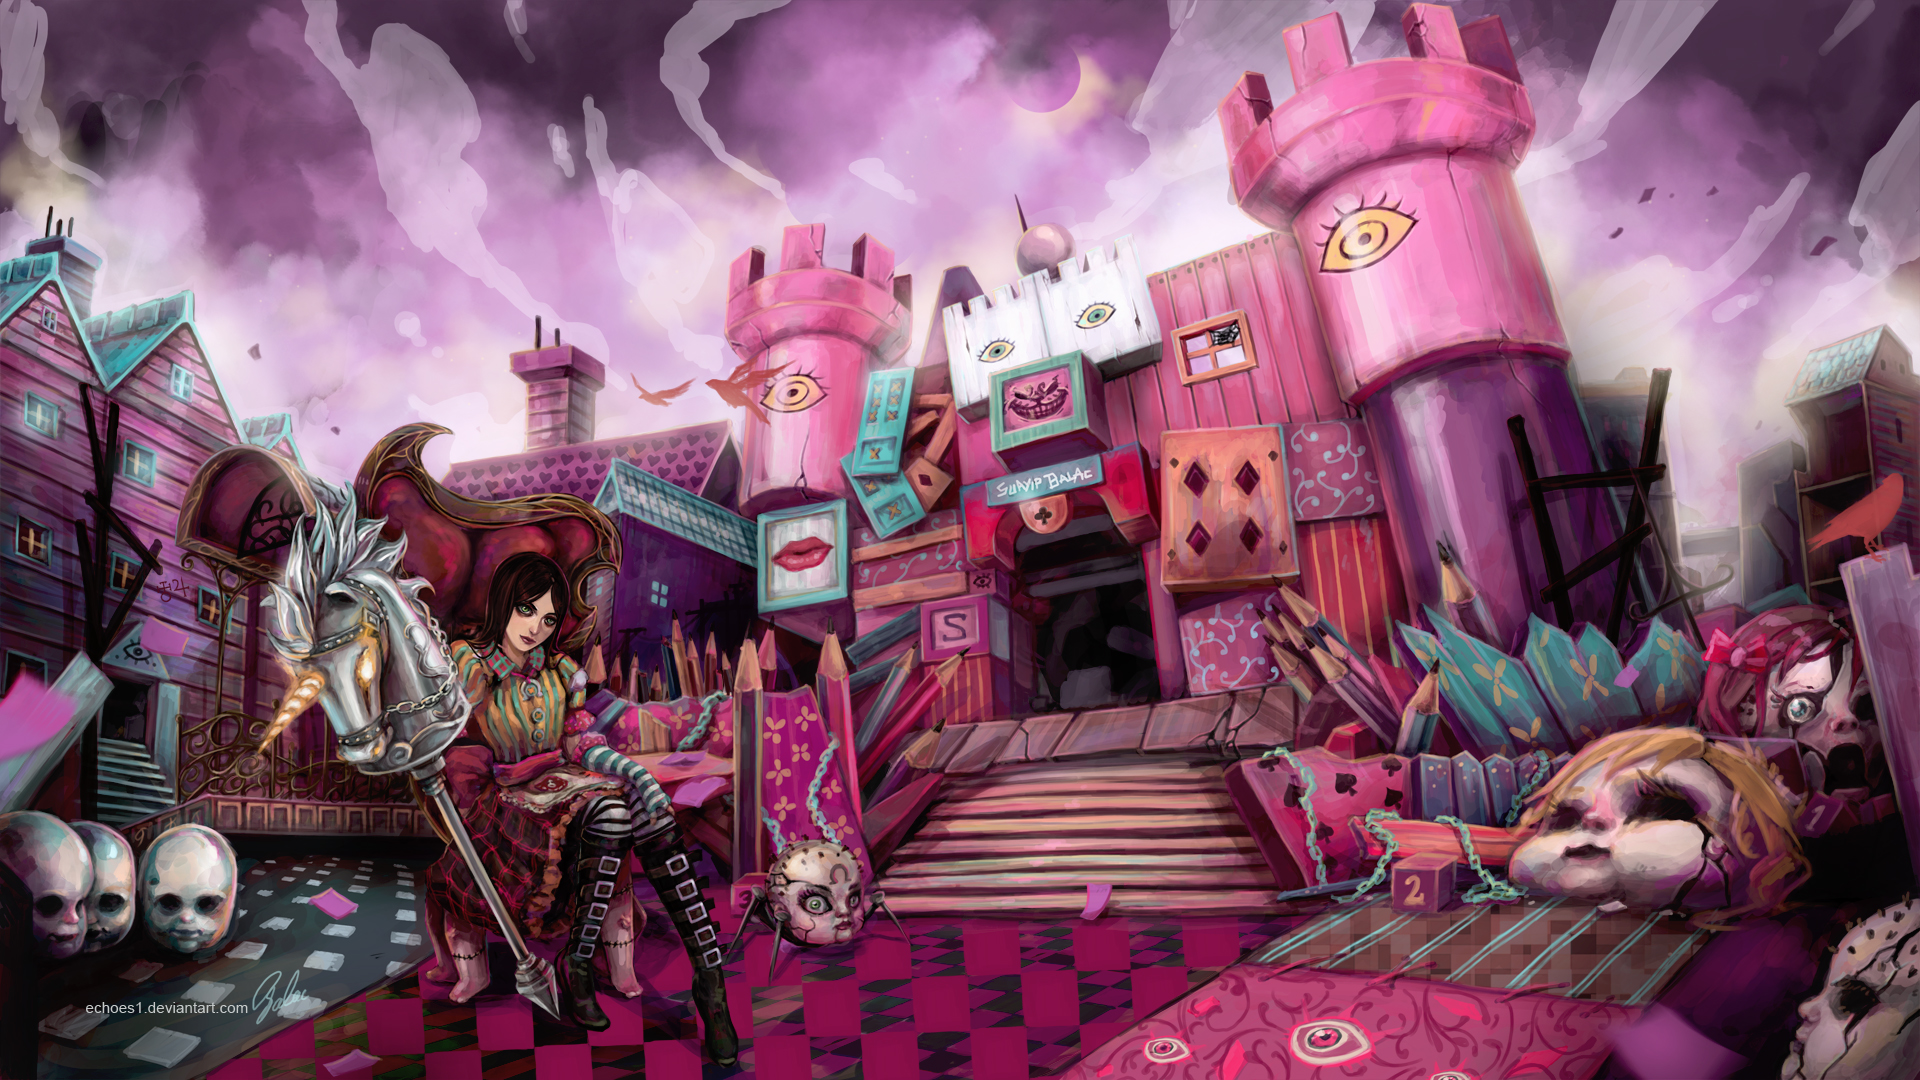 17 Best images about Alice madness returns on Pinterest | Floating